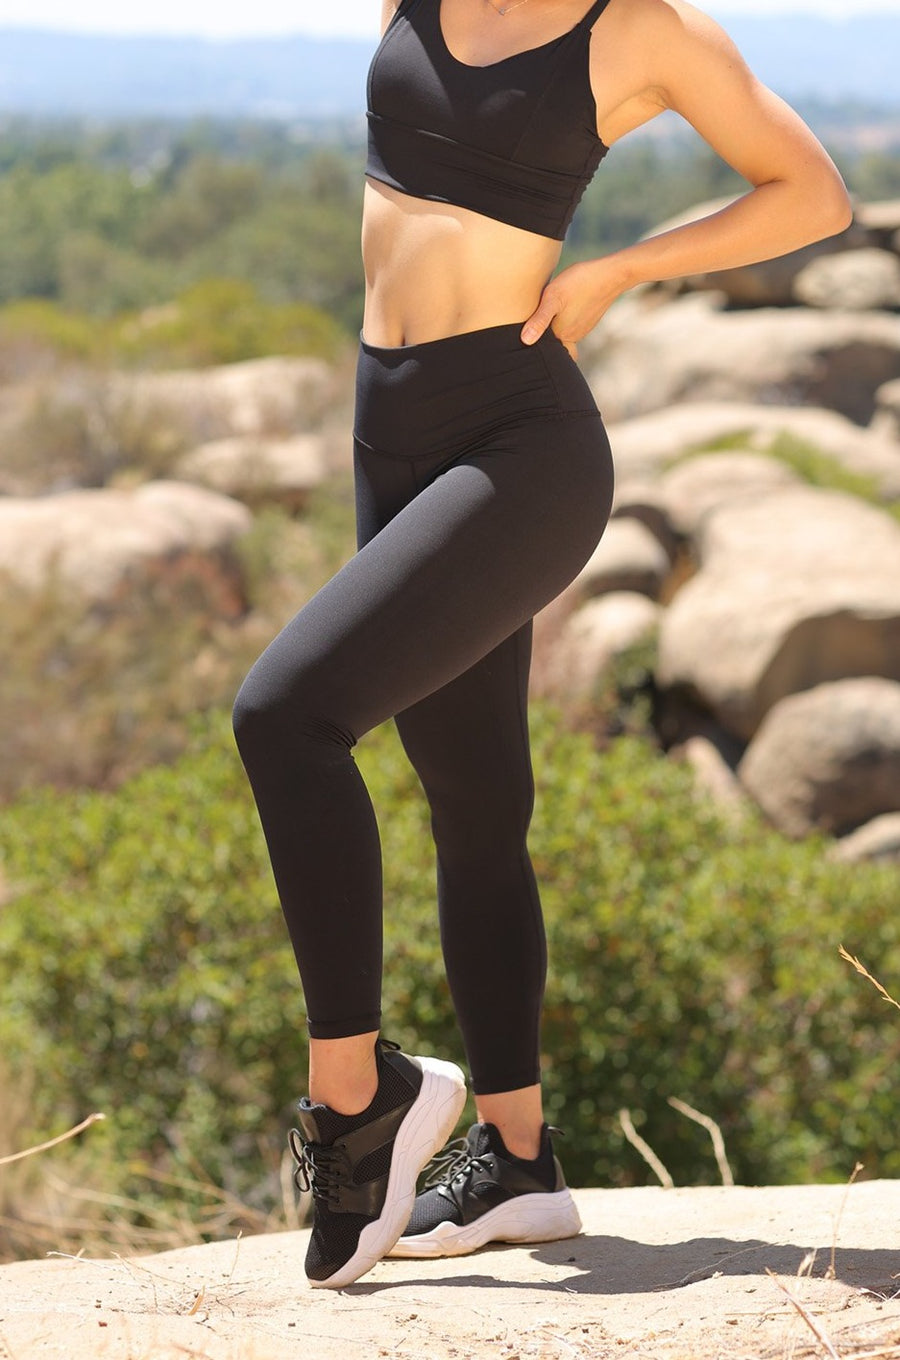 Alpine Legging (anti-camel toe) - Black